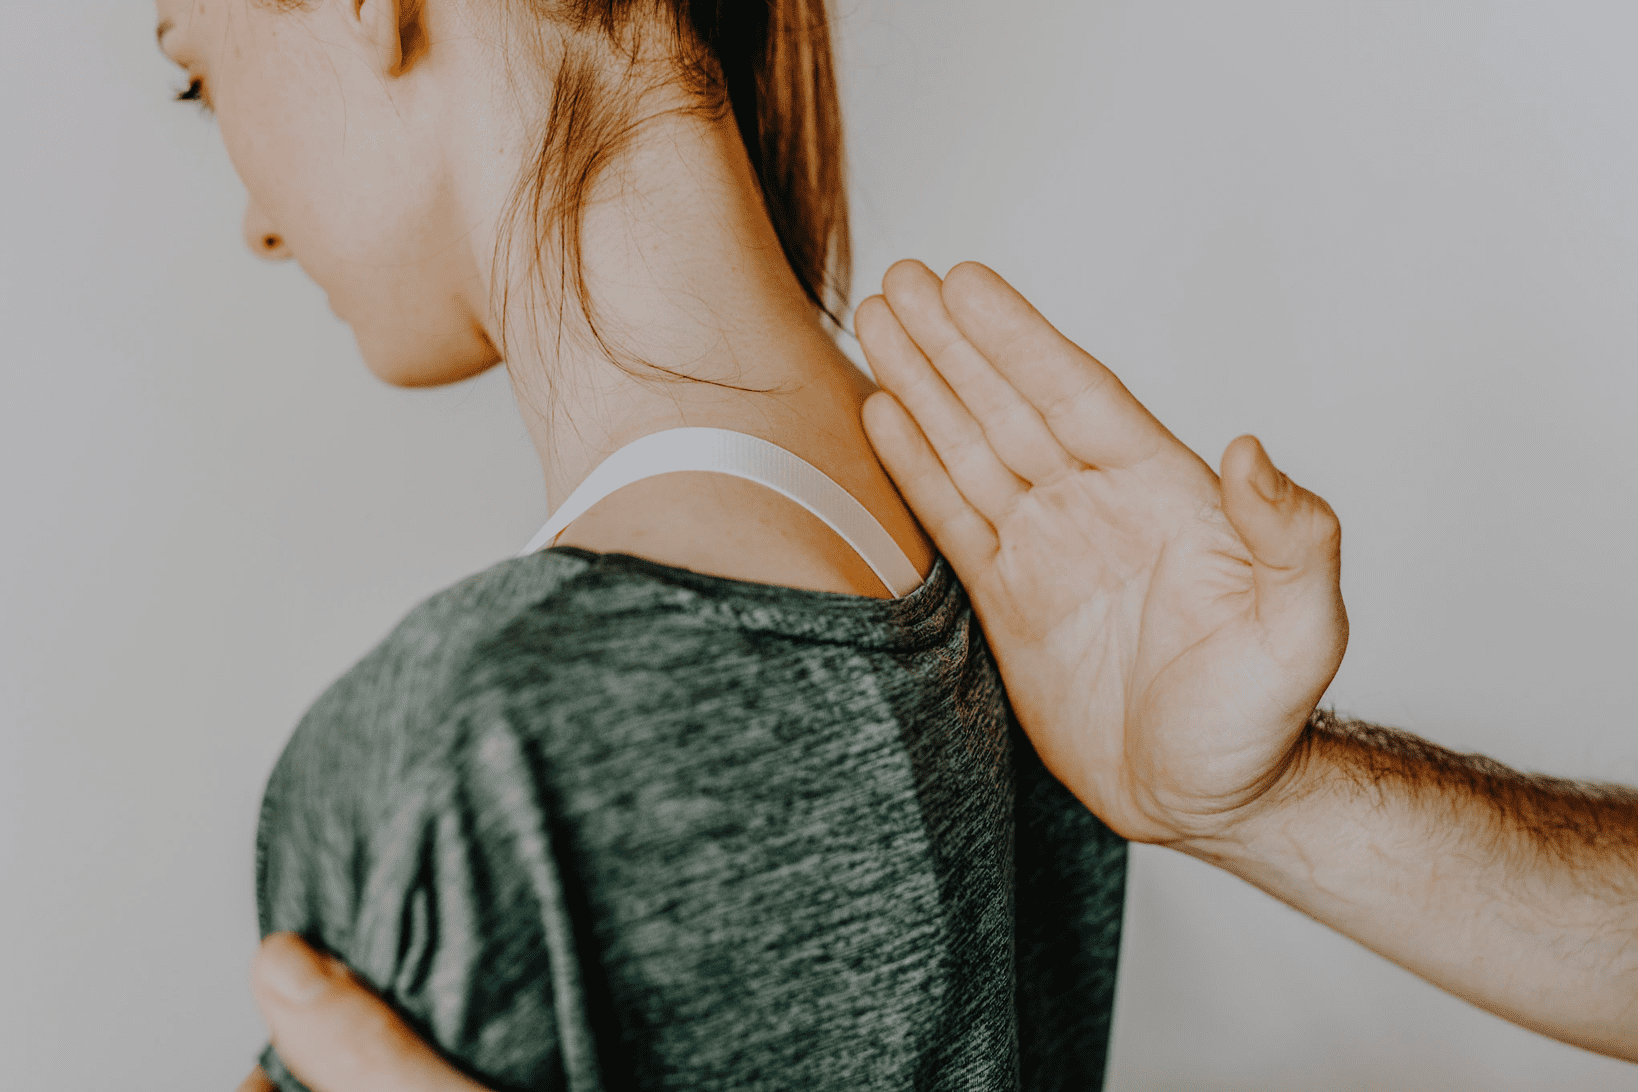 woman finding a chiropractor through getting adjustment